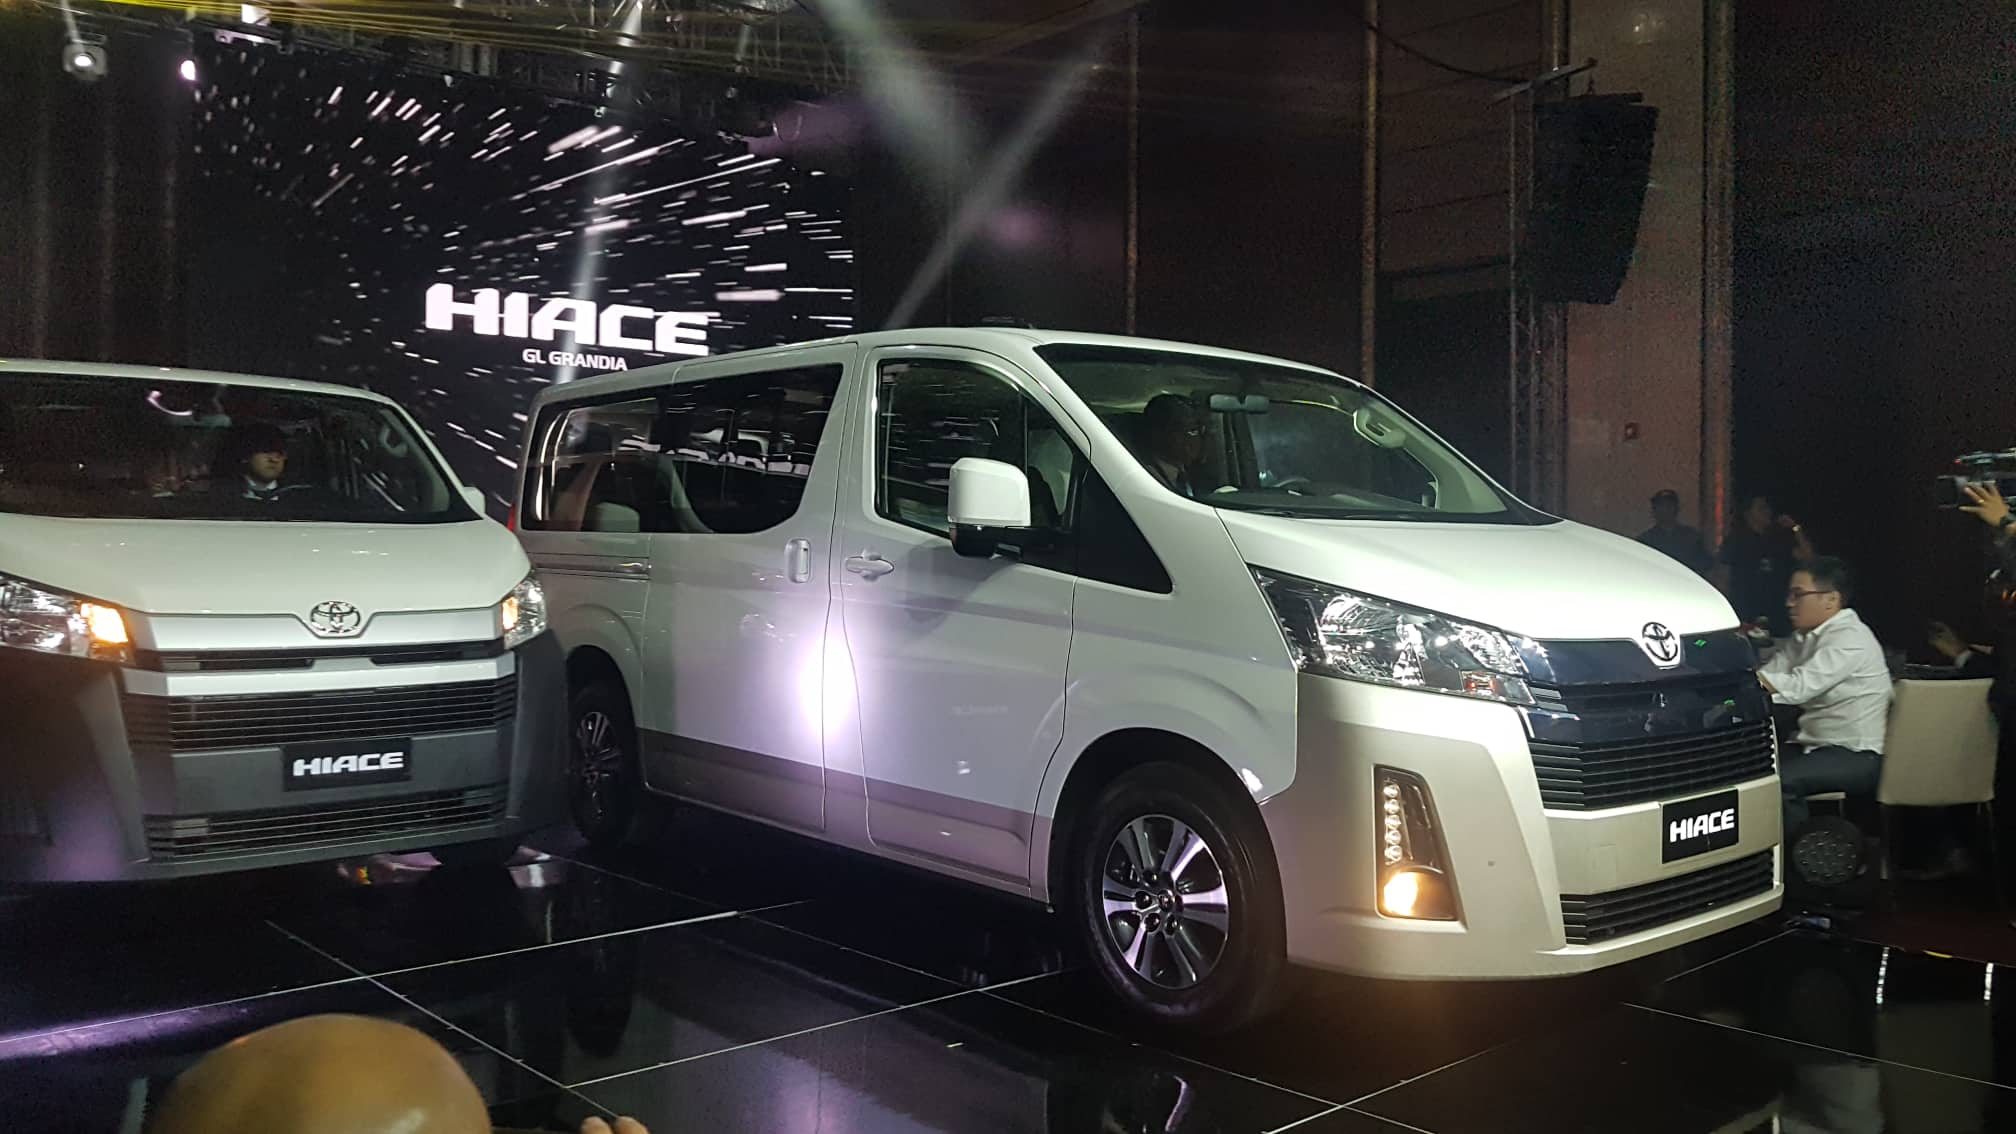 b46ffe82e7 Here are the engine specs and features of the all-new Toyota Hiace